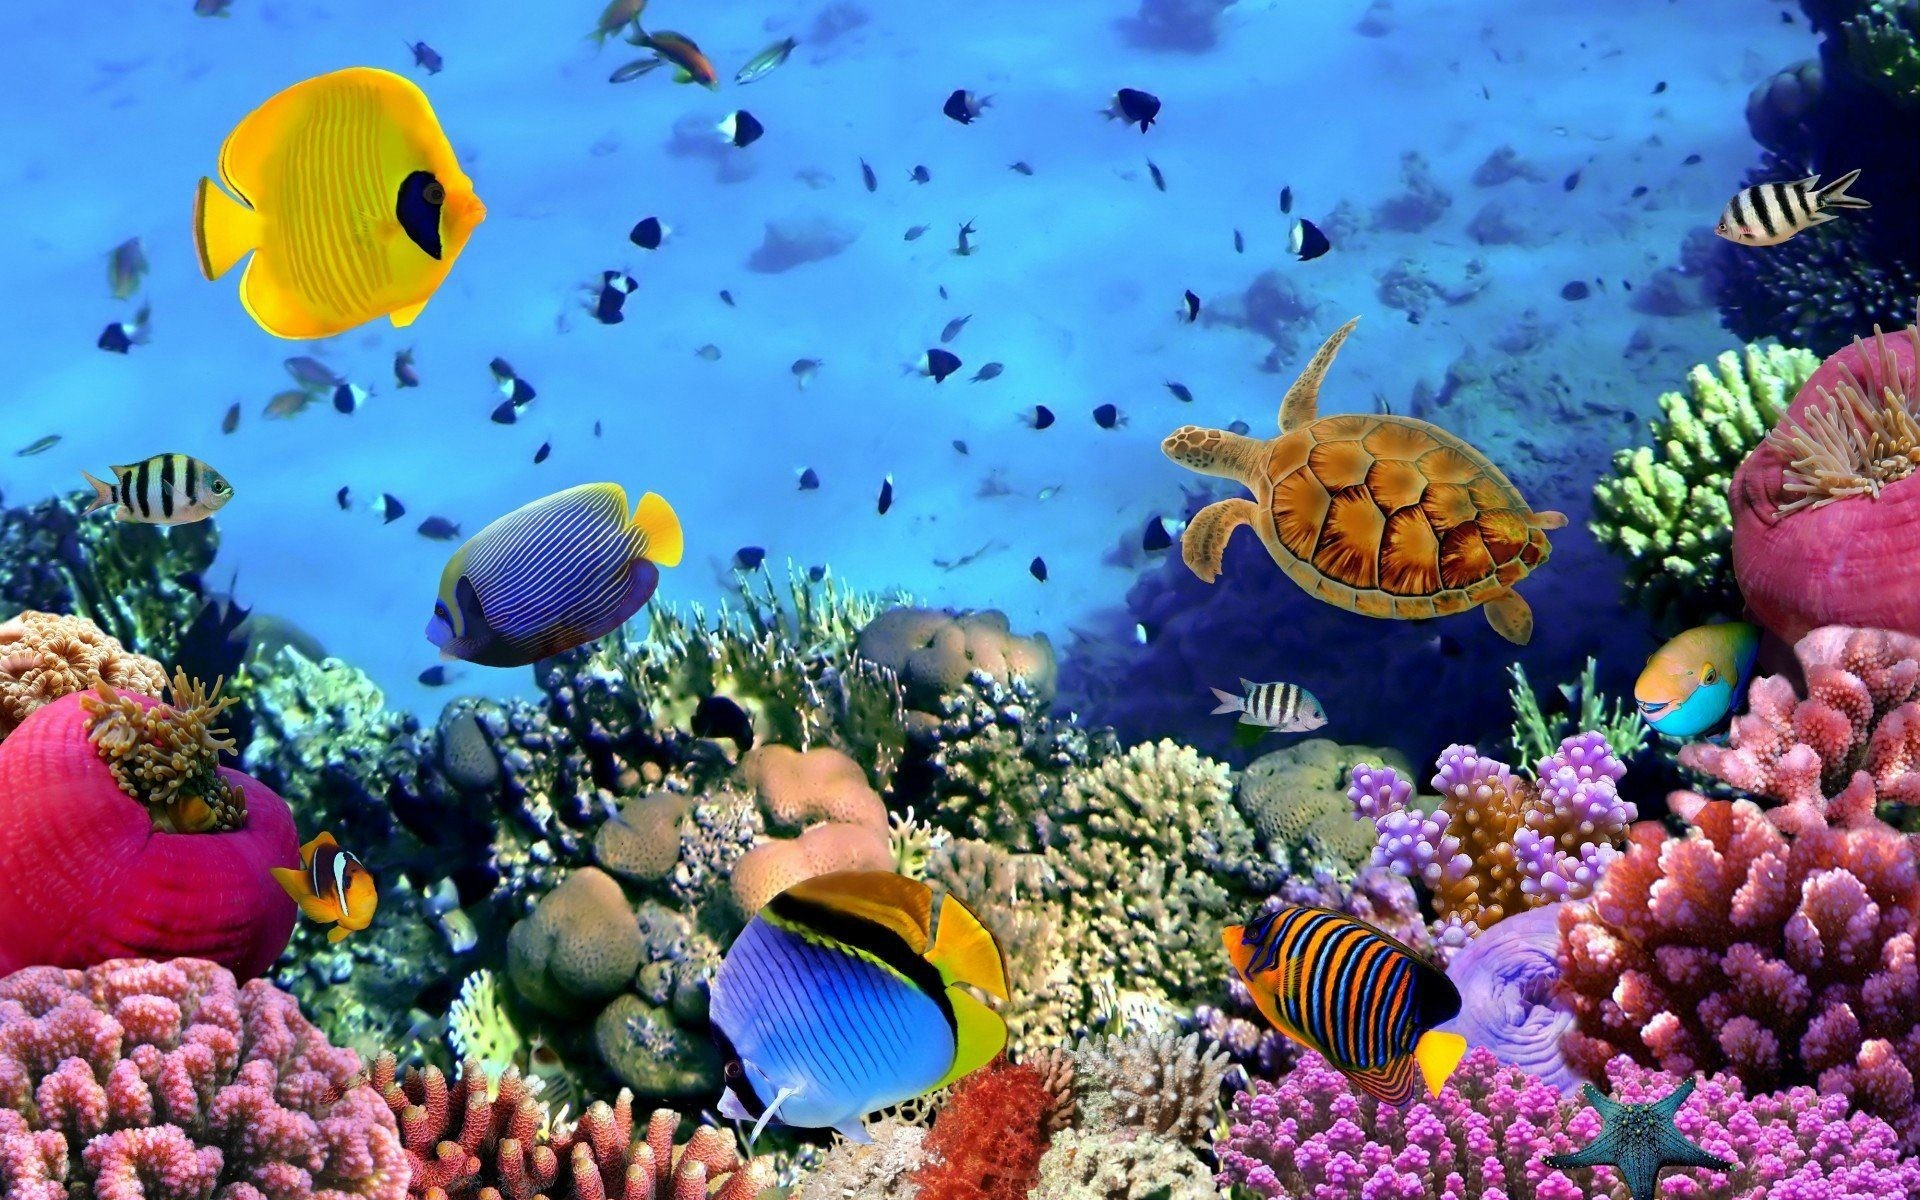 Res: 1920x1200, Animals Image 4k Background HD Picture ocean fish wallpaper